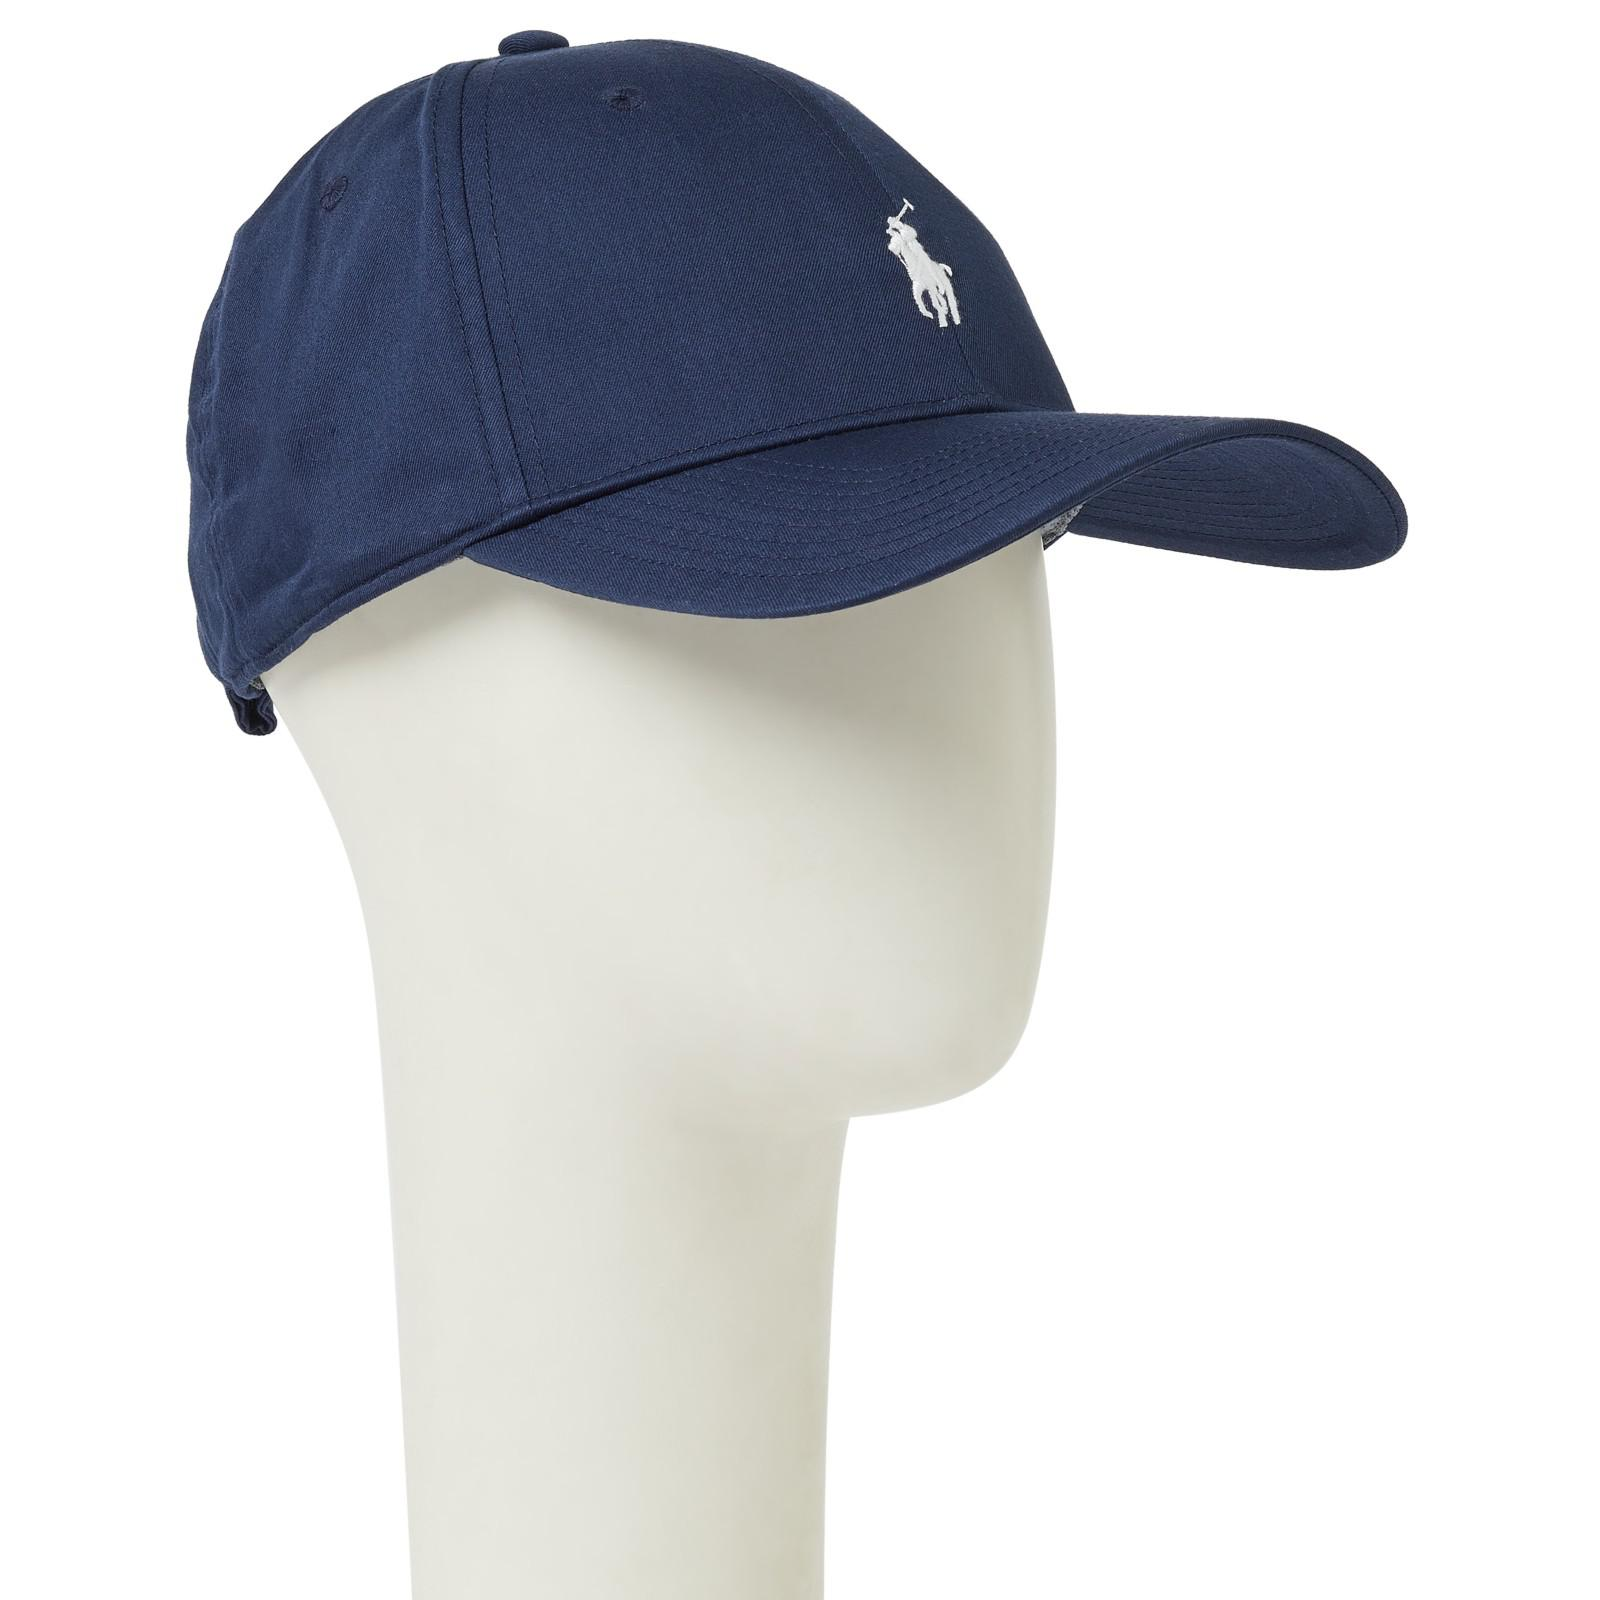 c713d88db91a2 Ralph Lauren Polo Golf By Fairway Cap in Blue for Men - Lyst